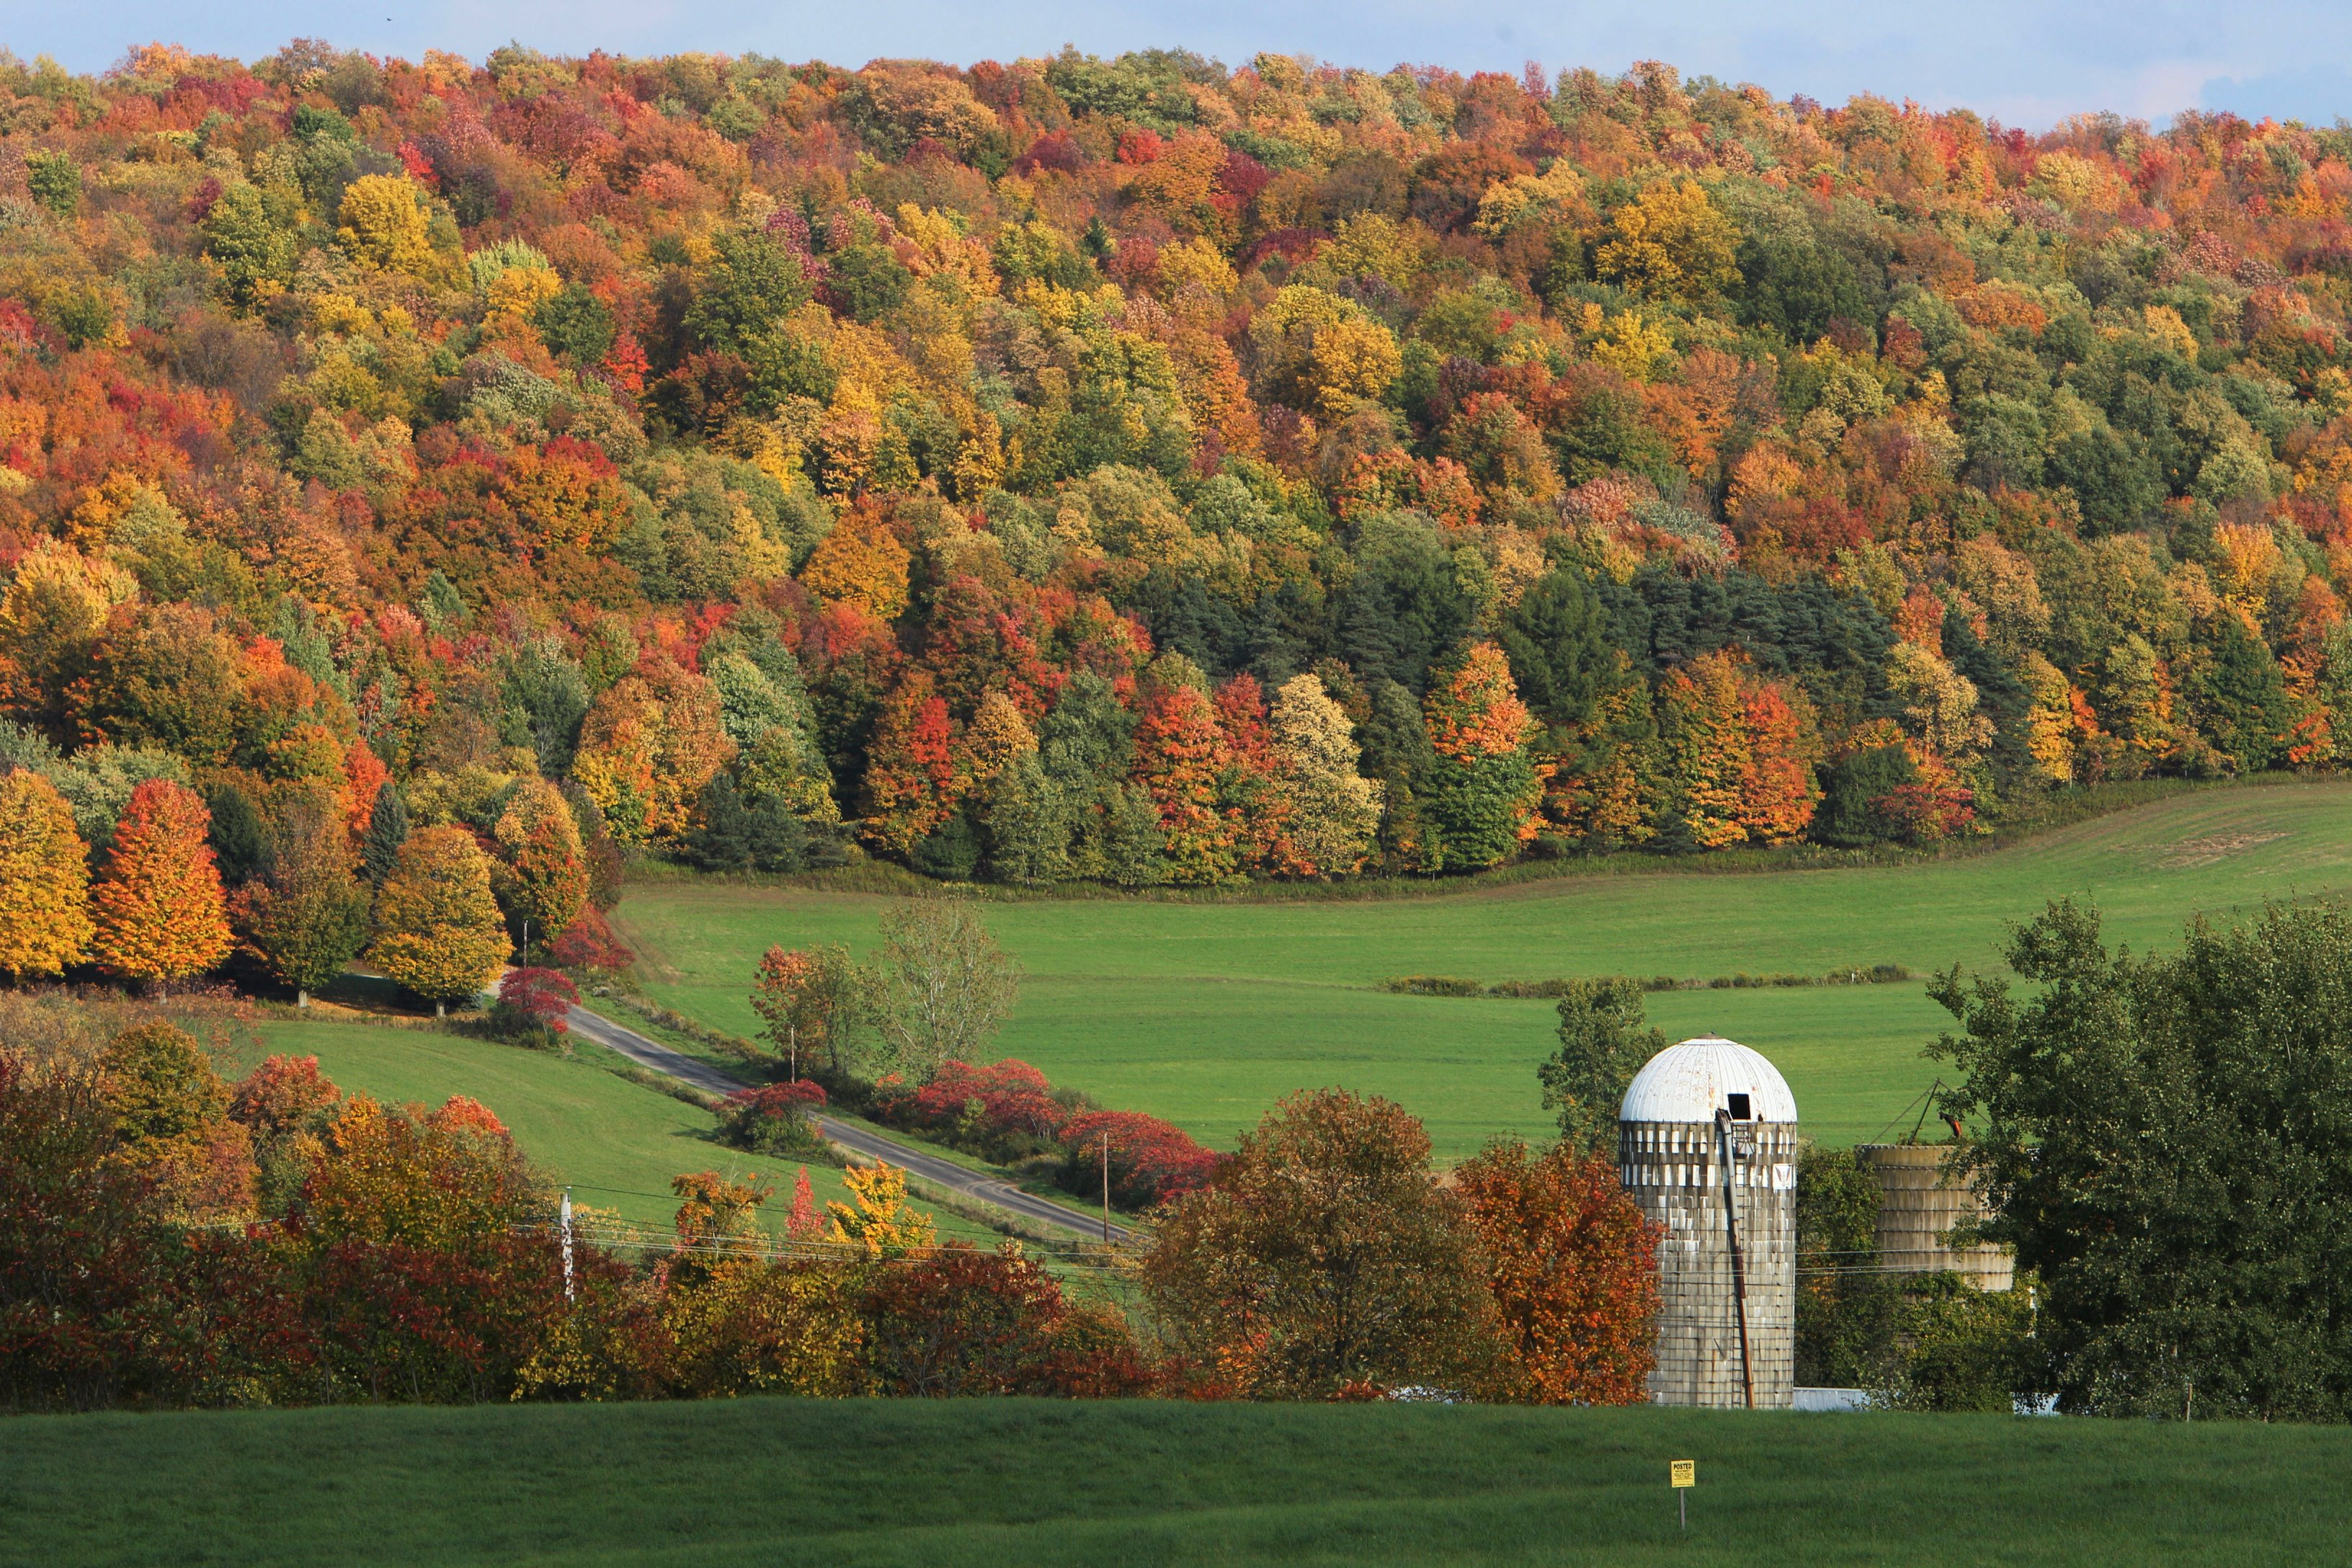 Trees display a blazing autumn palette along Leon Road in the town of New Albion in Cattaraugus County on Thursday, Oct. 4, 2012.   (Sharon Cantillon / Buffalo News)